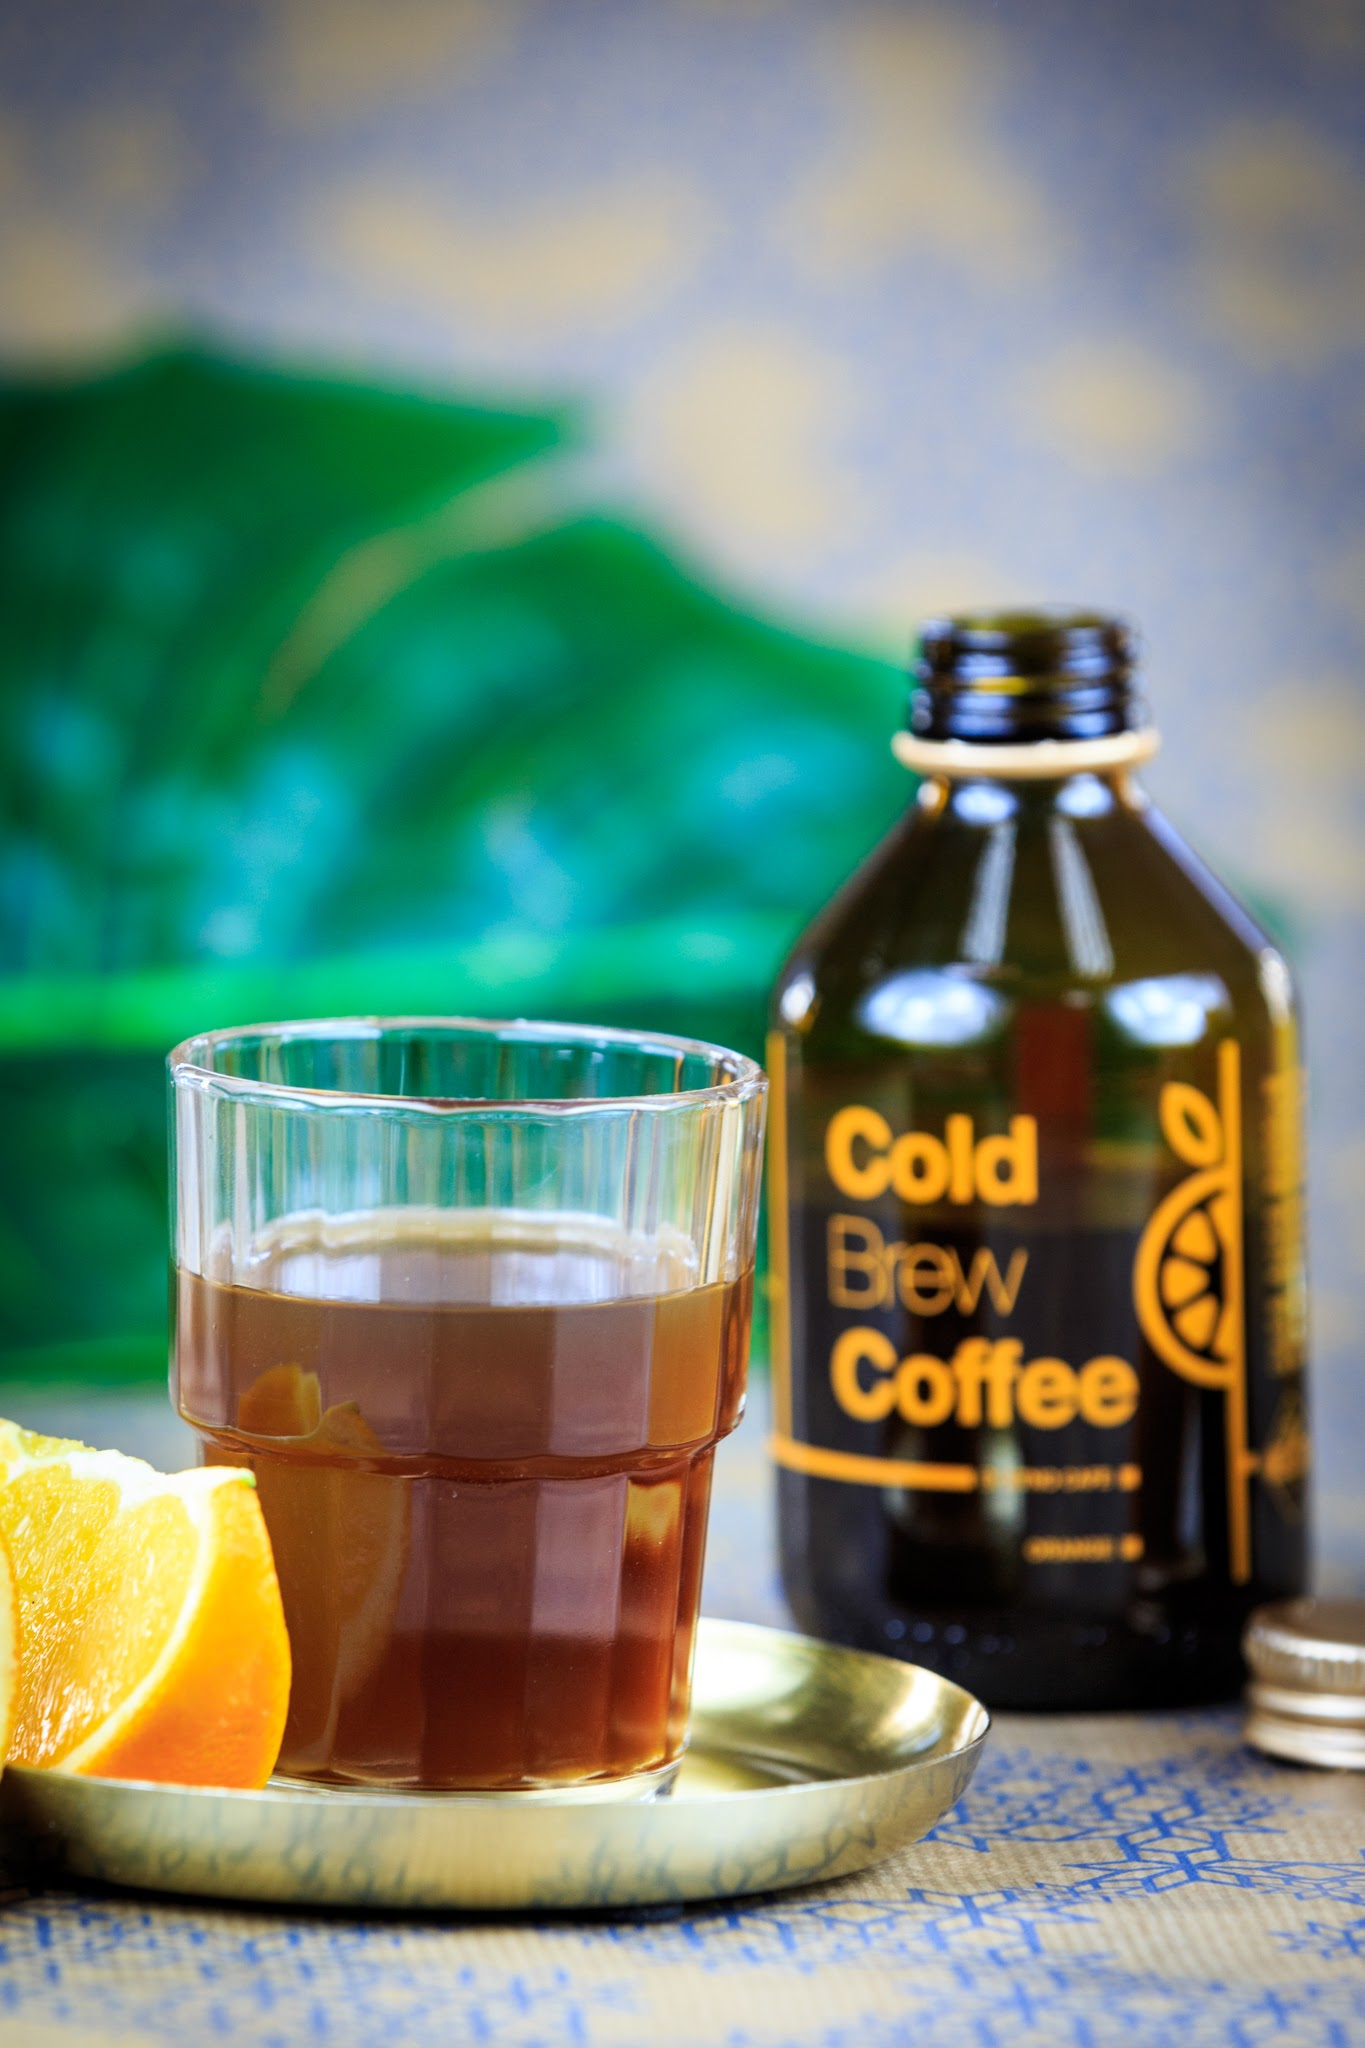 Cold Brew Coffee Orange